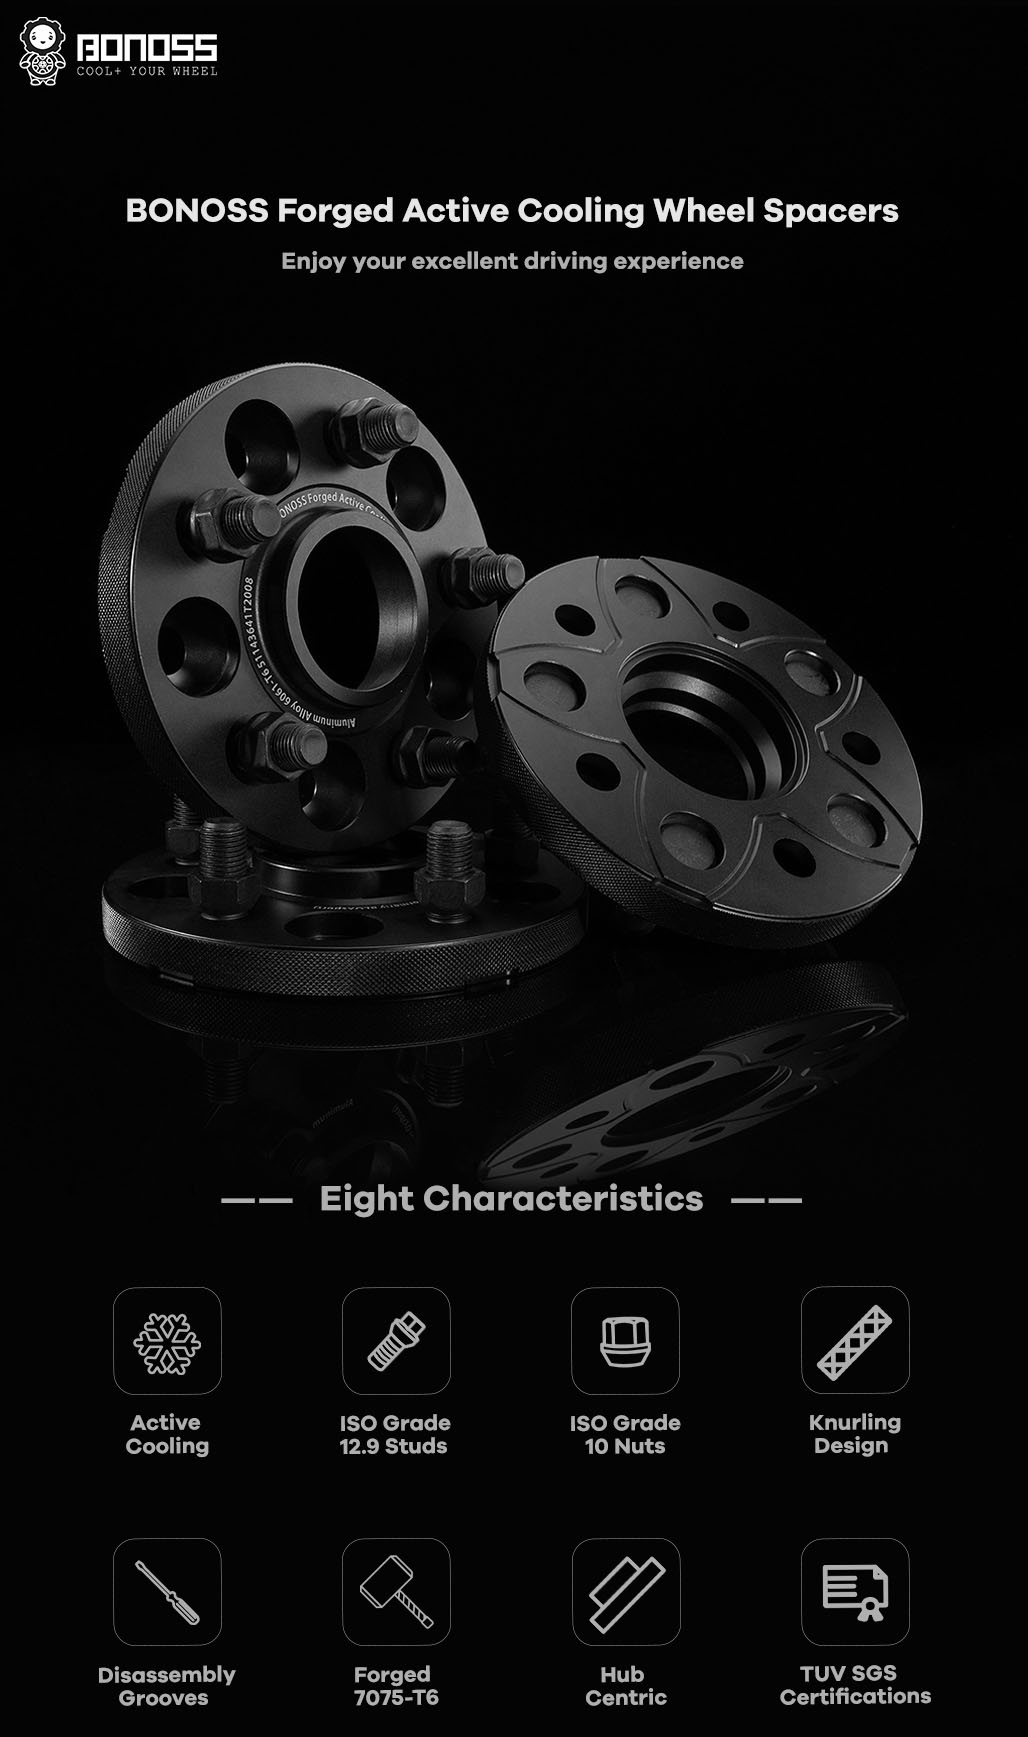 AL7075-T6 BONOSS-forged-active-cooling-wheel-spacer-Tesla-Model3-5x114.3-64.1-M14X1.5-by-lulu